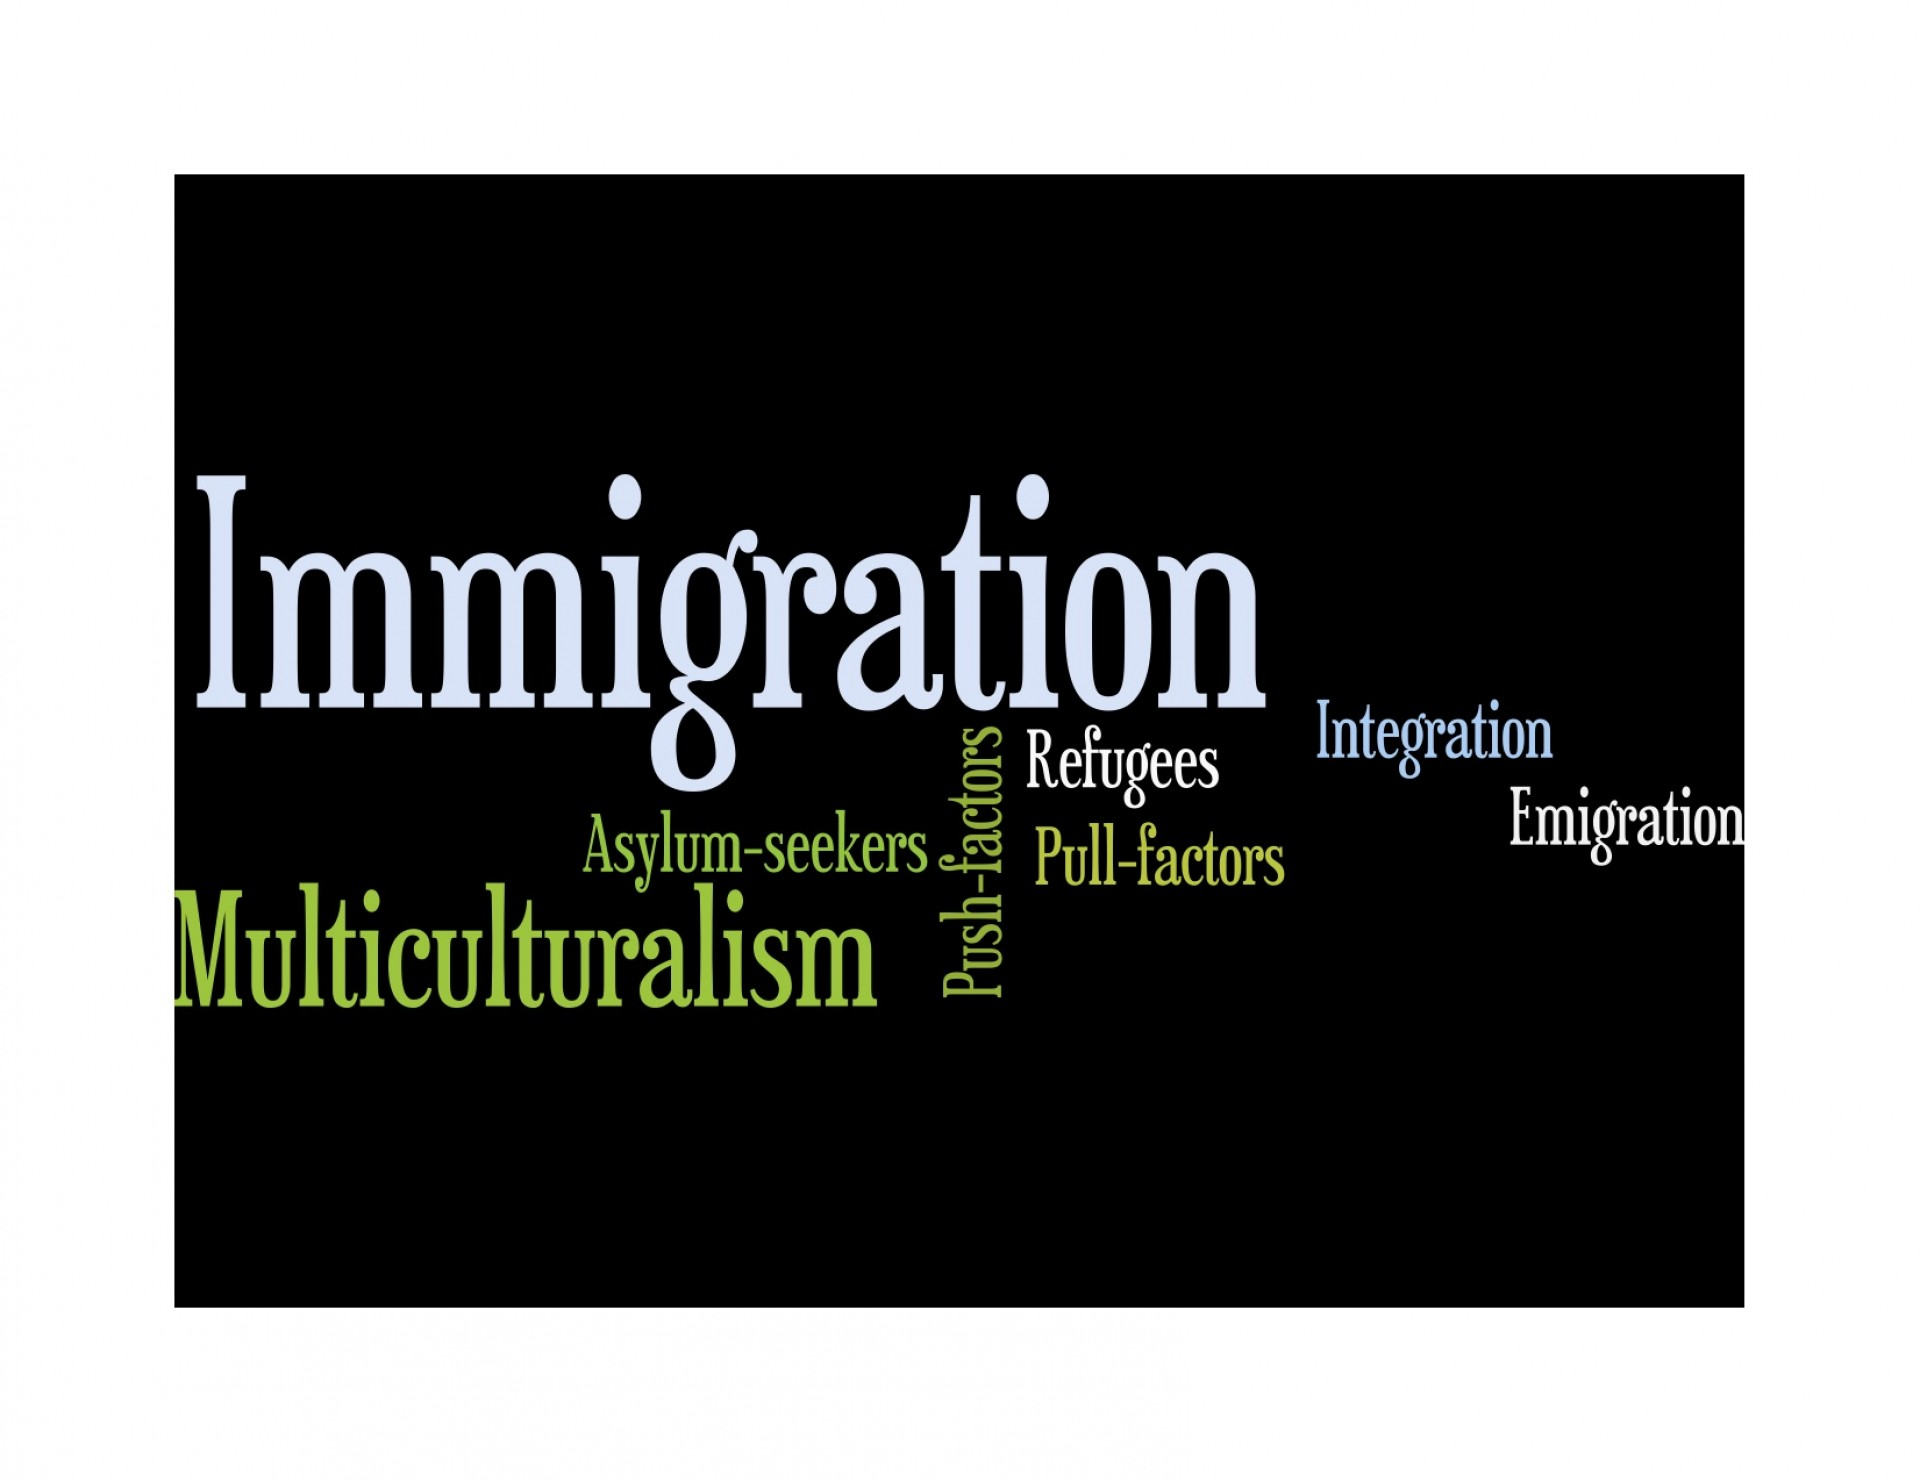 015 Immigration20wordle Essay Example About Marvelous Immigration In Canada Causes The United States 1920